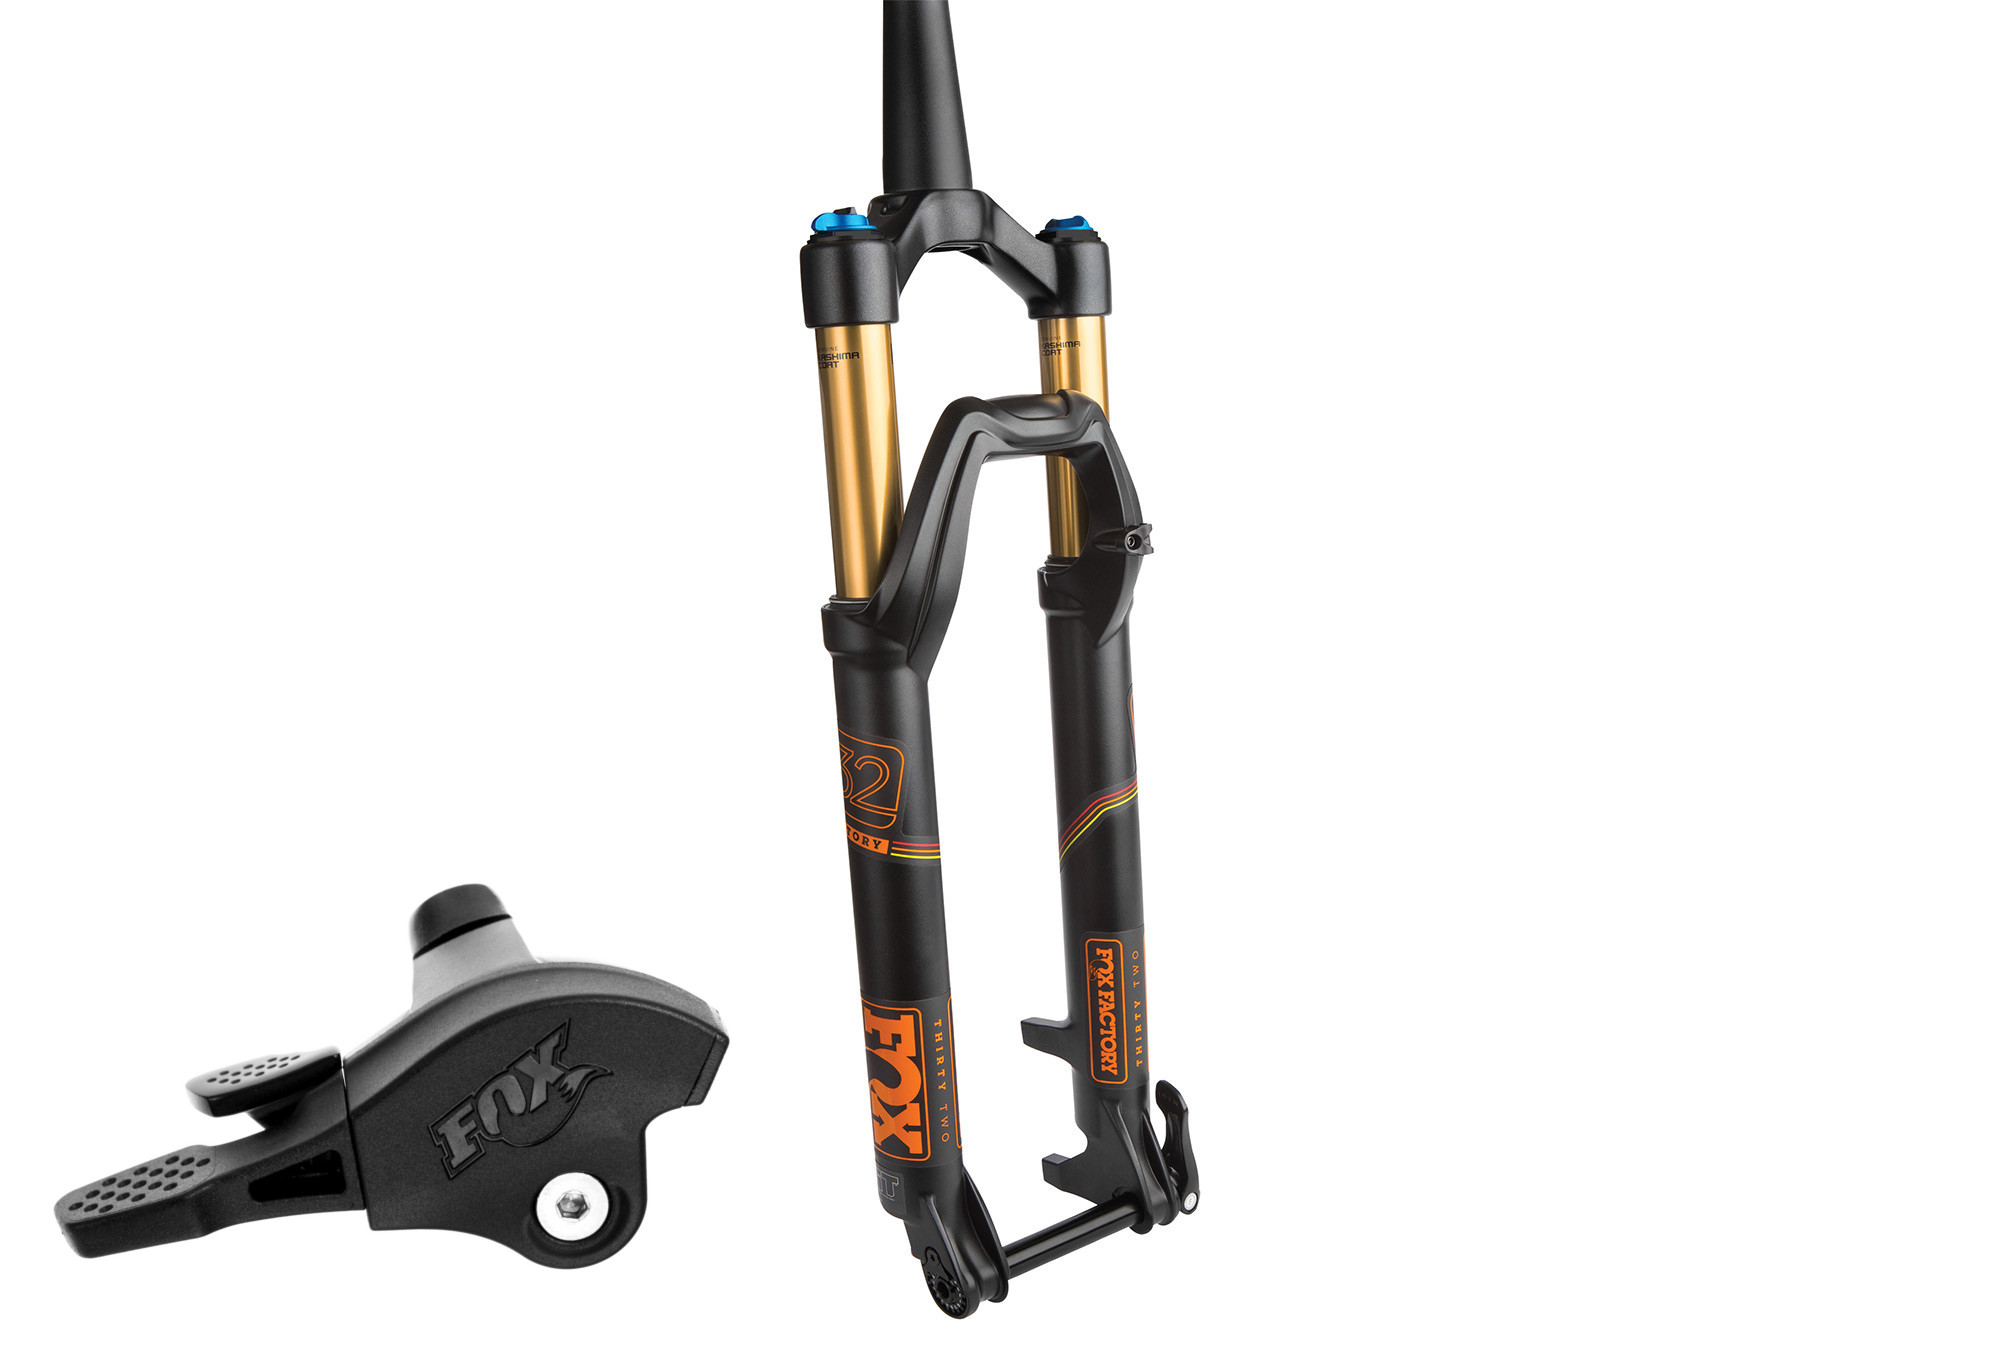 32 Remote Shox Factory Fork 15x100offset 29'' 51Black Float 2019 Fox Racing 2pos Fit4 L543AjR